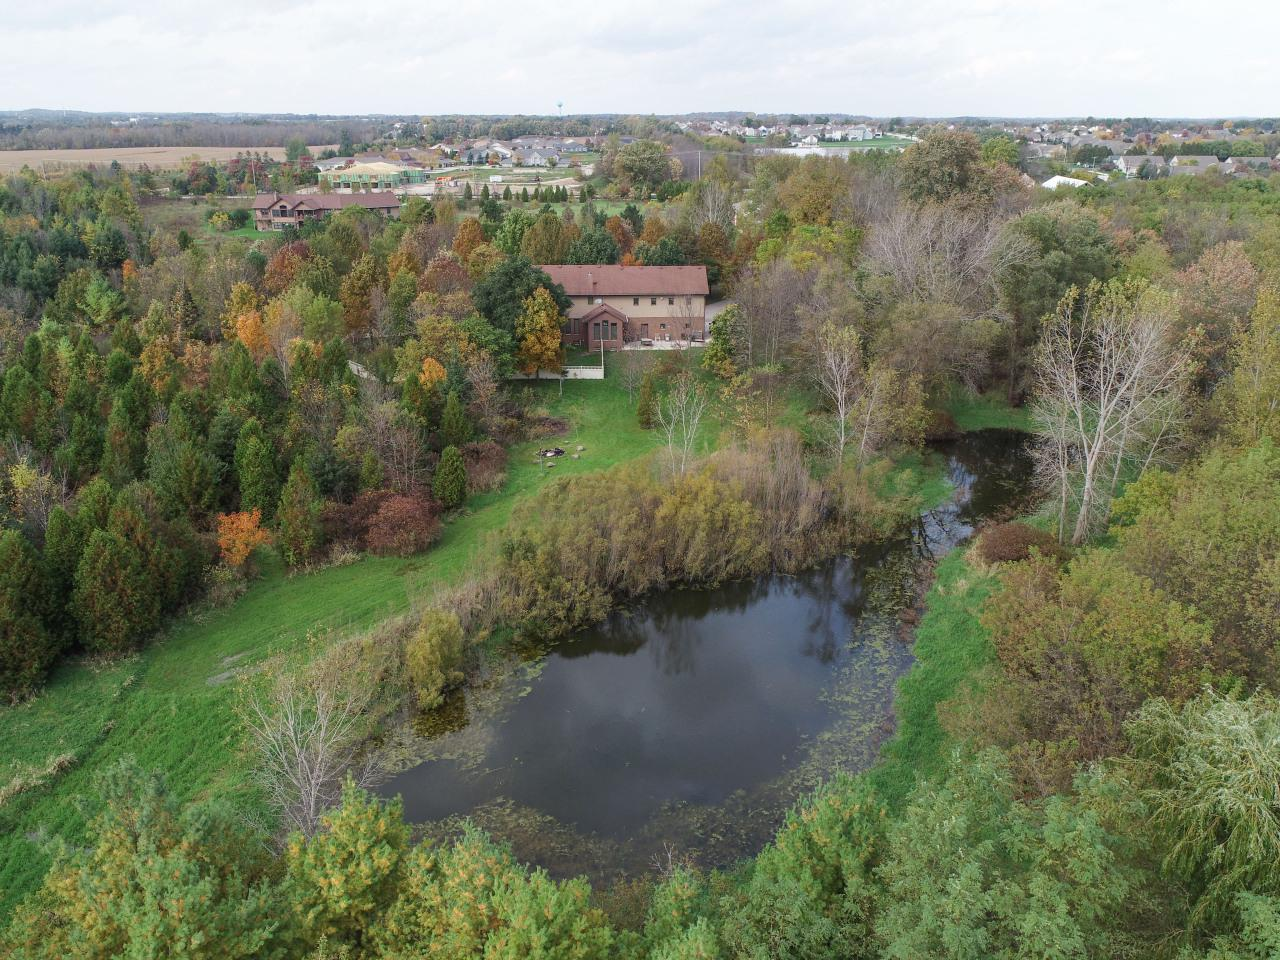 This is your chance to own 24 acres of paradise! Enjoy the abundant wildlife, hiking and hunting. Sip your morning beverage while watching the deer, turkey or the birds in the pond. Take a hike and stop at the creek. Custom built brick home features solid oak flooring, custom mill work, built-ins, Pella windows and much more! Huge bonus room above garage with new flooring. Freight elevator makes moving large items to the second floor a breeze. 30x50 and 25x30 pole buildings for plenty of extra storage. Recent updates include granite counter tops in kitchen, air conditioner, furnace, refinished hardwood floors on main, whole home generator, air exchanger, Weather Tight front door. Kubota tractor with brush cutter included. HSA Home Warranty provided.